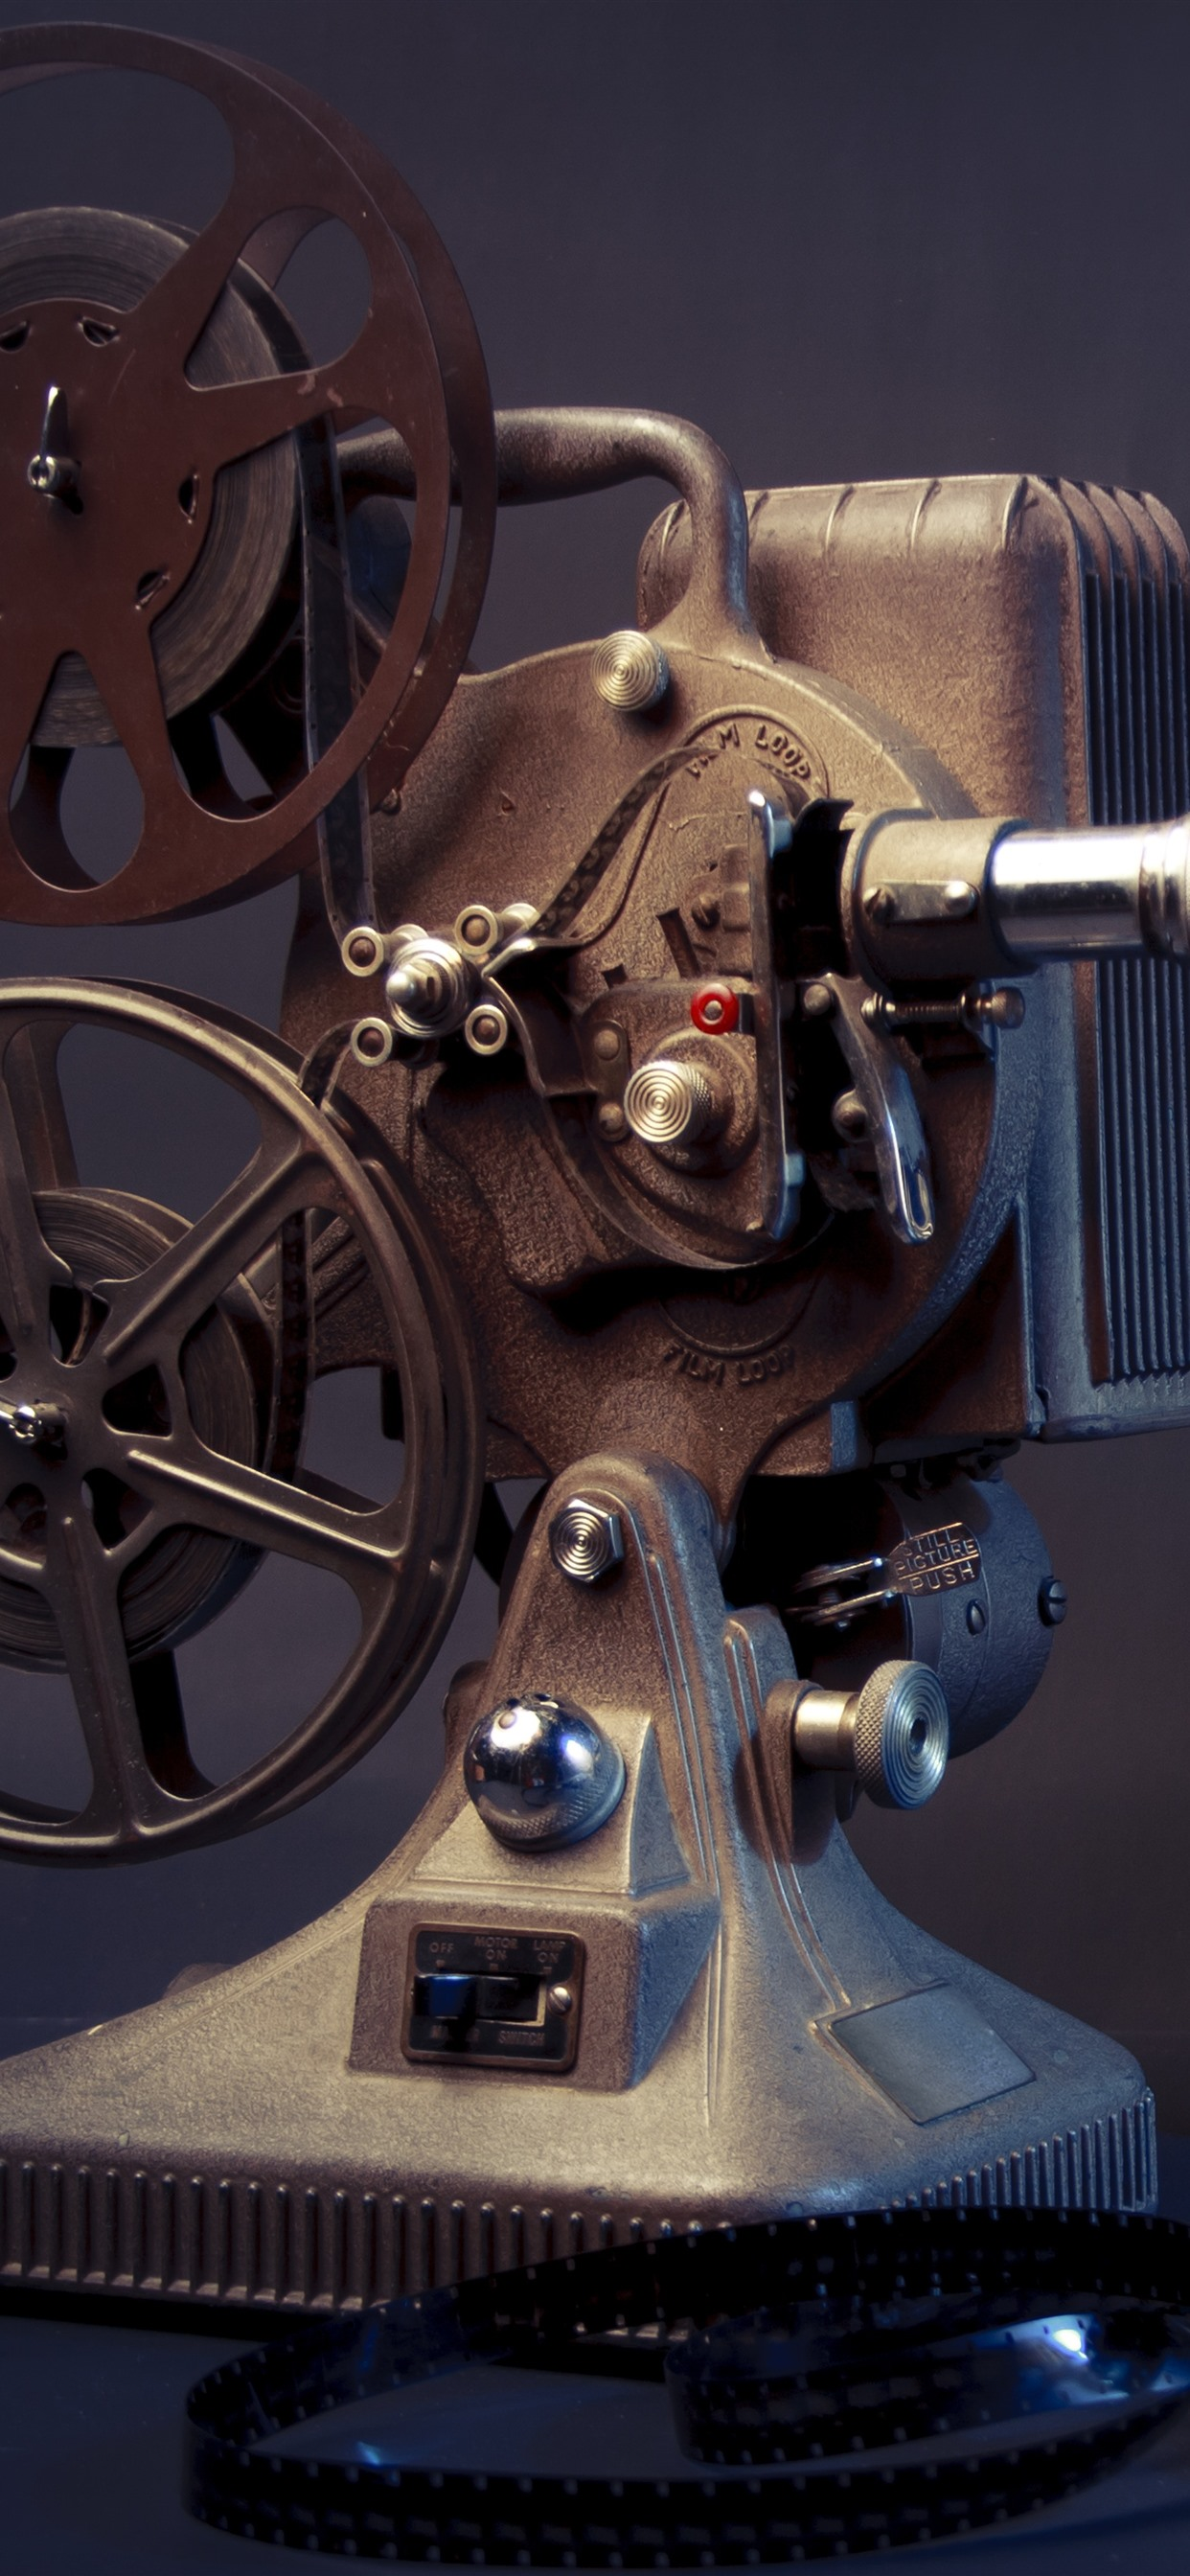 Movie Player Vintage 1242x2688 Iphone 11 Pro Xs Max Wallpaper Background Picture Image